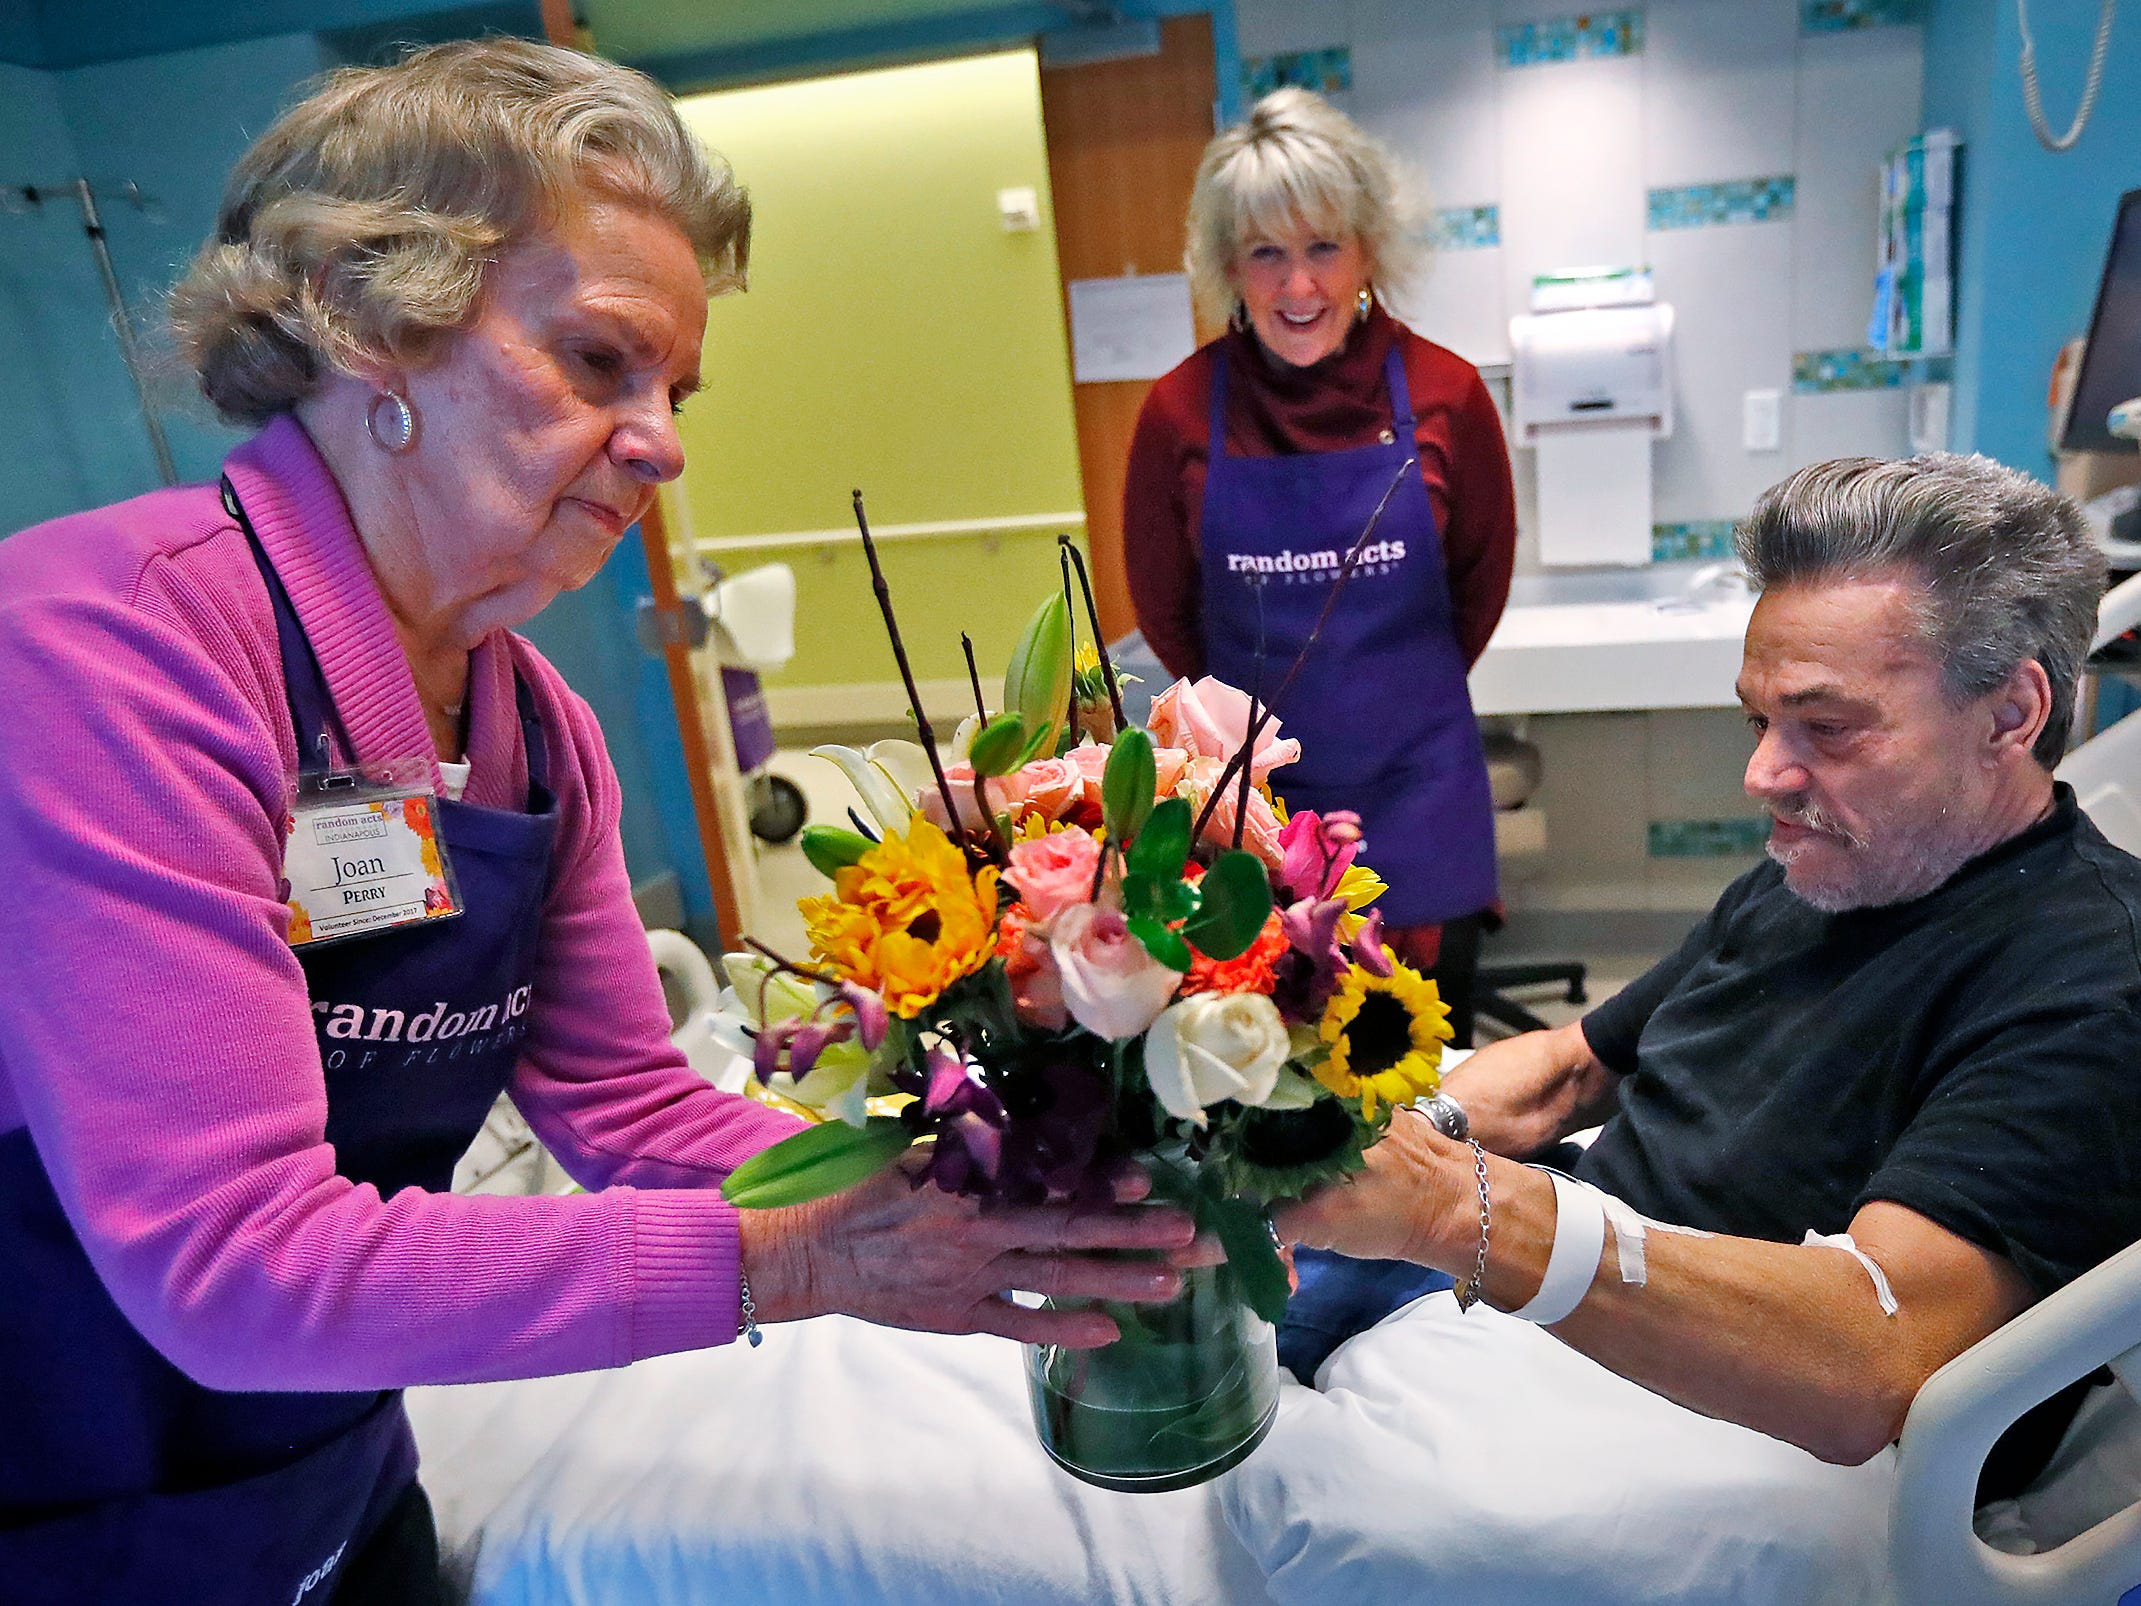 Joan Perry, from left, and Claire Alexander, with Random Acts of Flowers, deliver a bouquet of flowers to Robert Eastes, right, at Sidney & Lois Eskenazi Hospital, Thursday, Nov. 29, 2018.  The newest branch of the national floral nonprofit has been delivering the flowers to patients to offer hope, encouragement and smiles, for about two years.